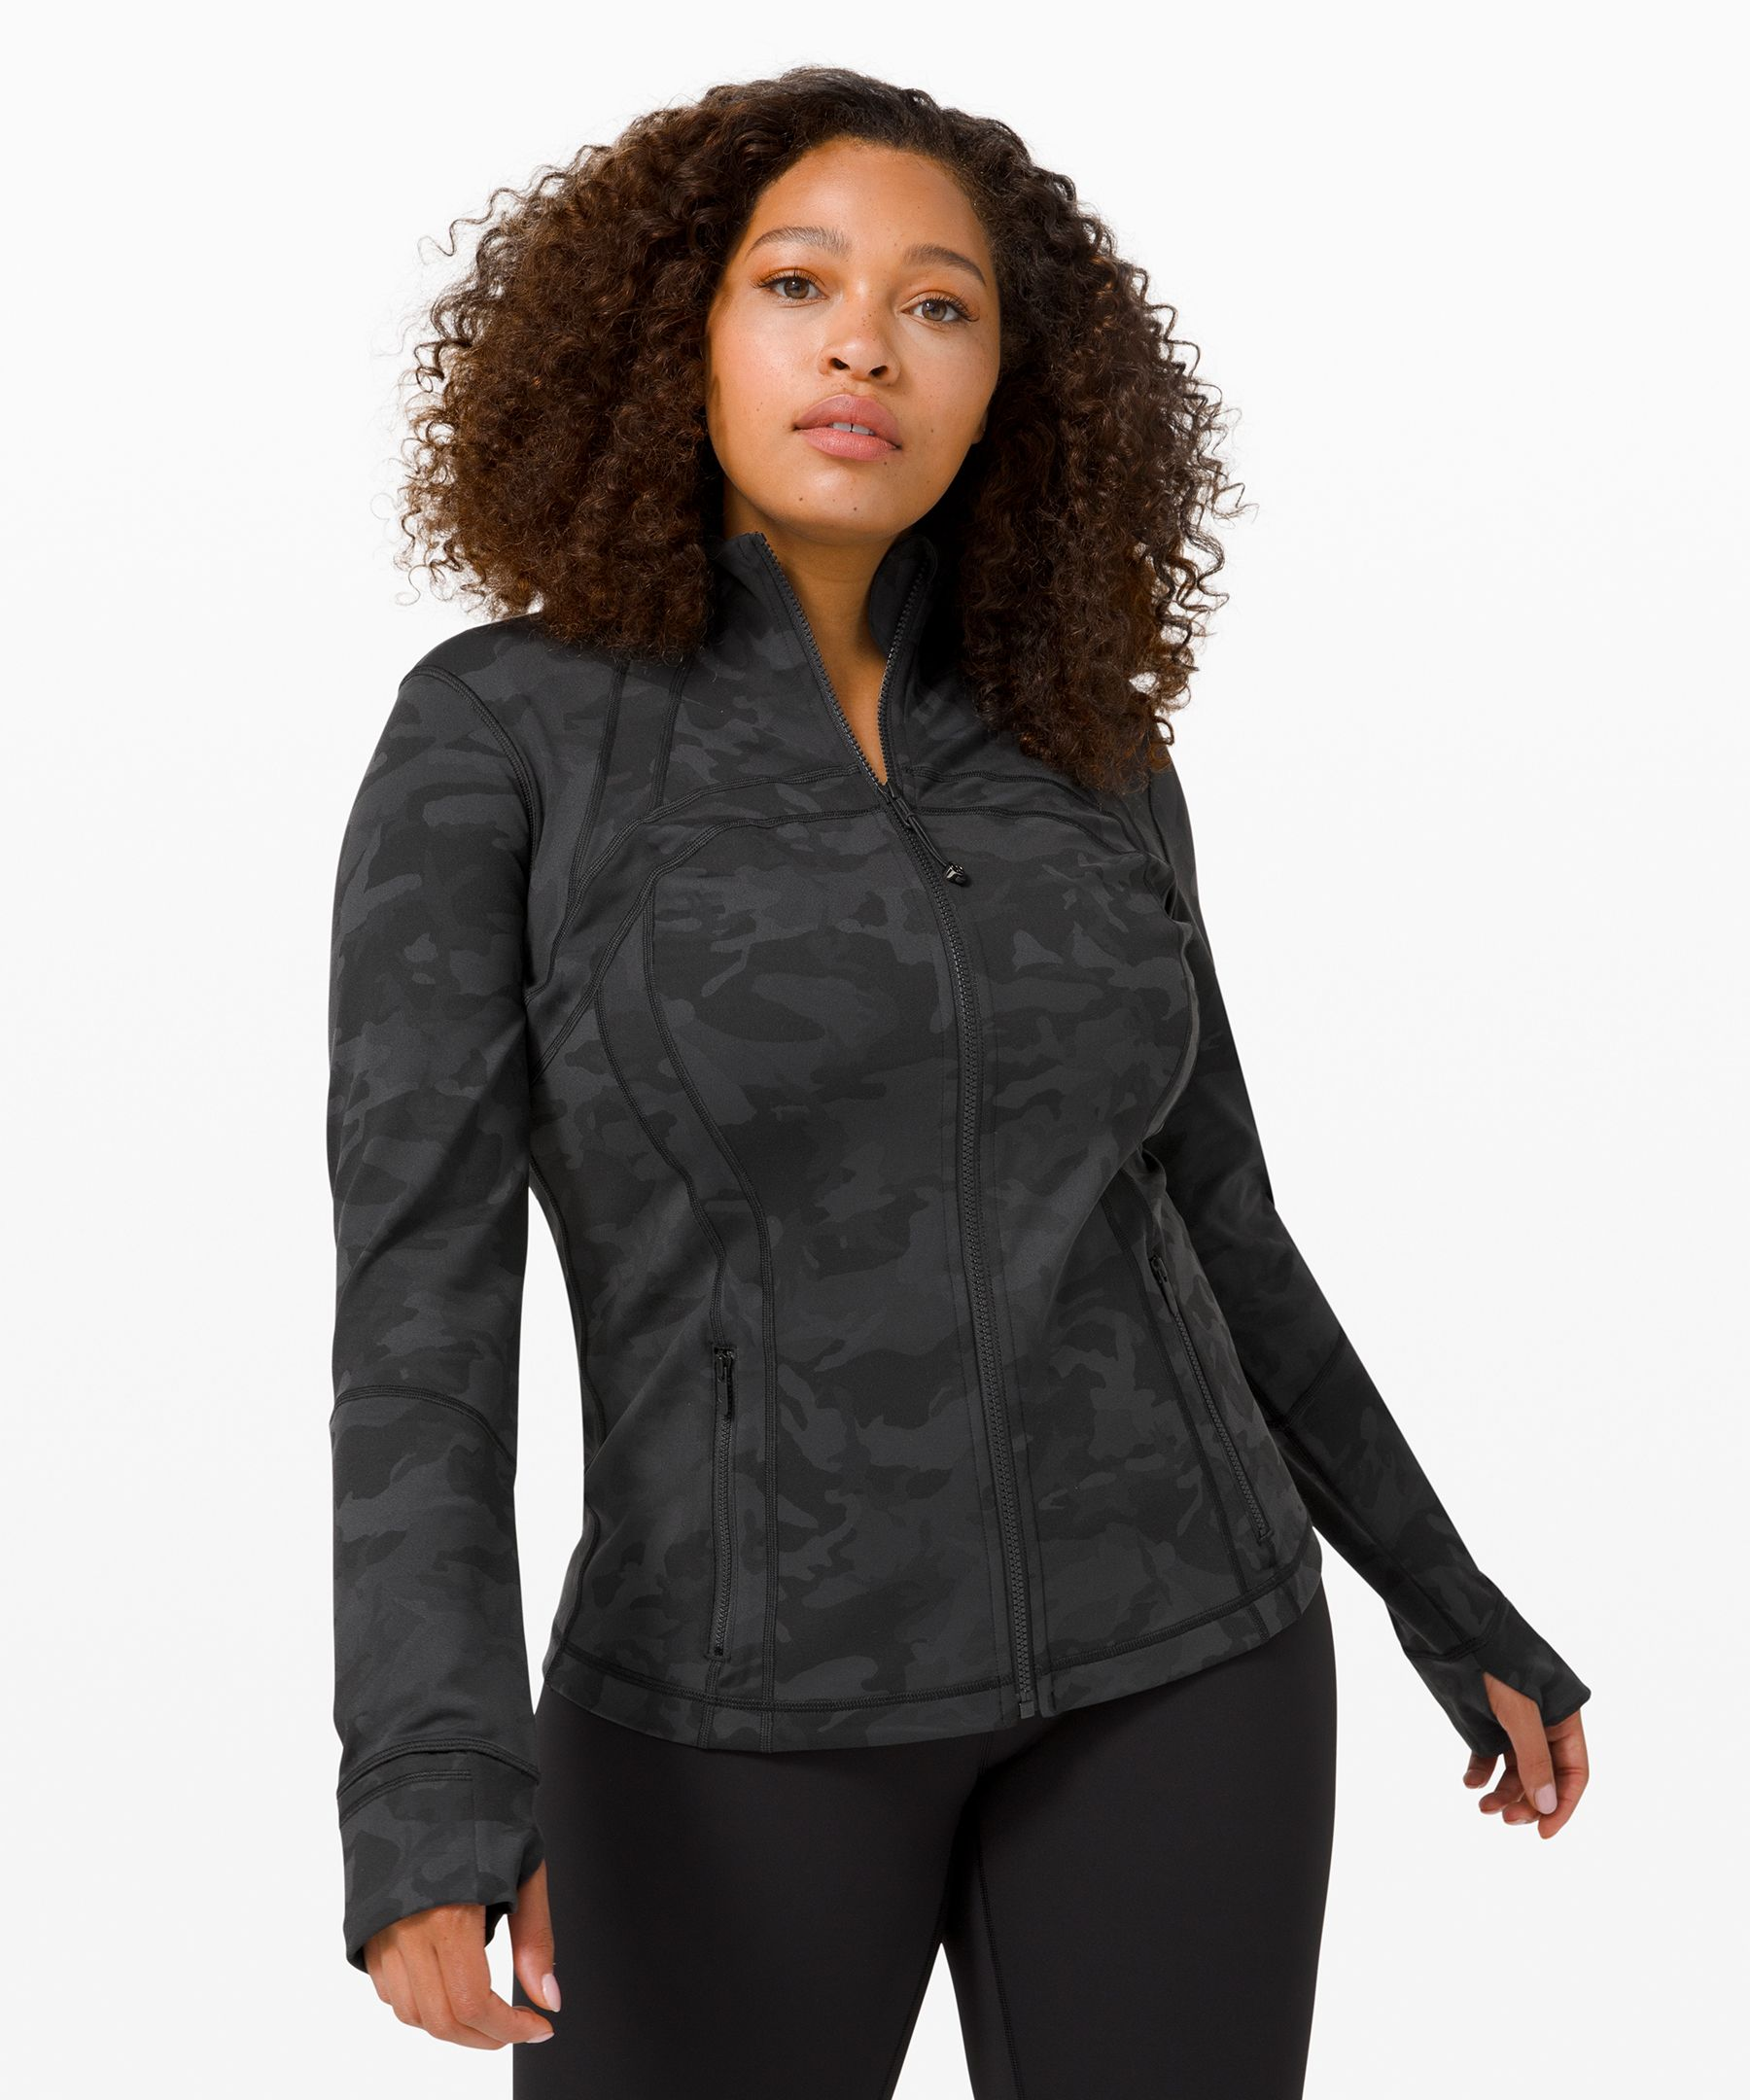 Whether you\'re up for  adventure or ready for down  time, feel empowered in this  lightweight, technical jacket  that contours your body for a  perfect, do-anything fit.